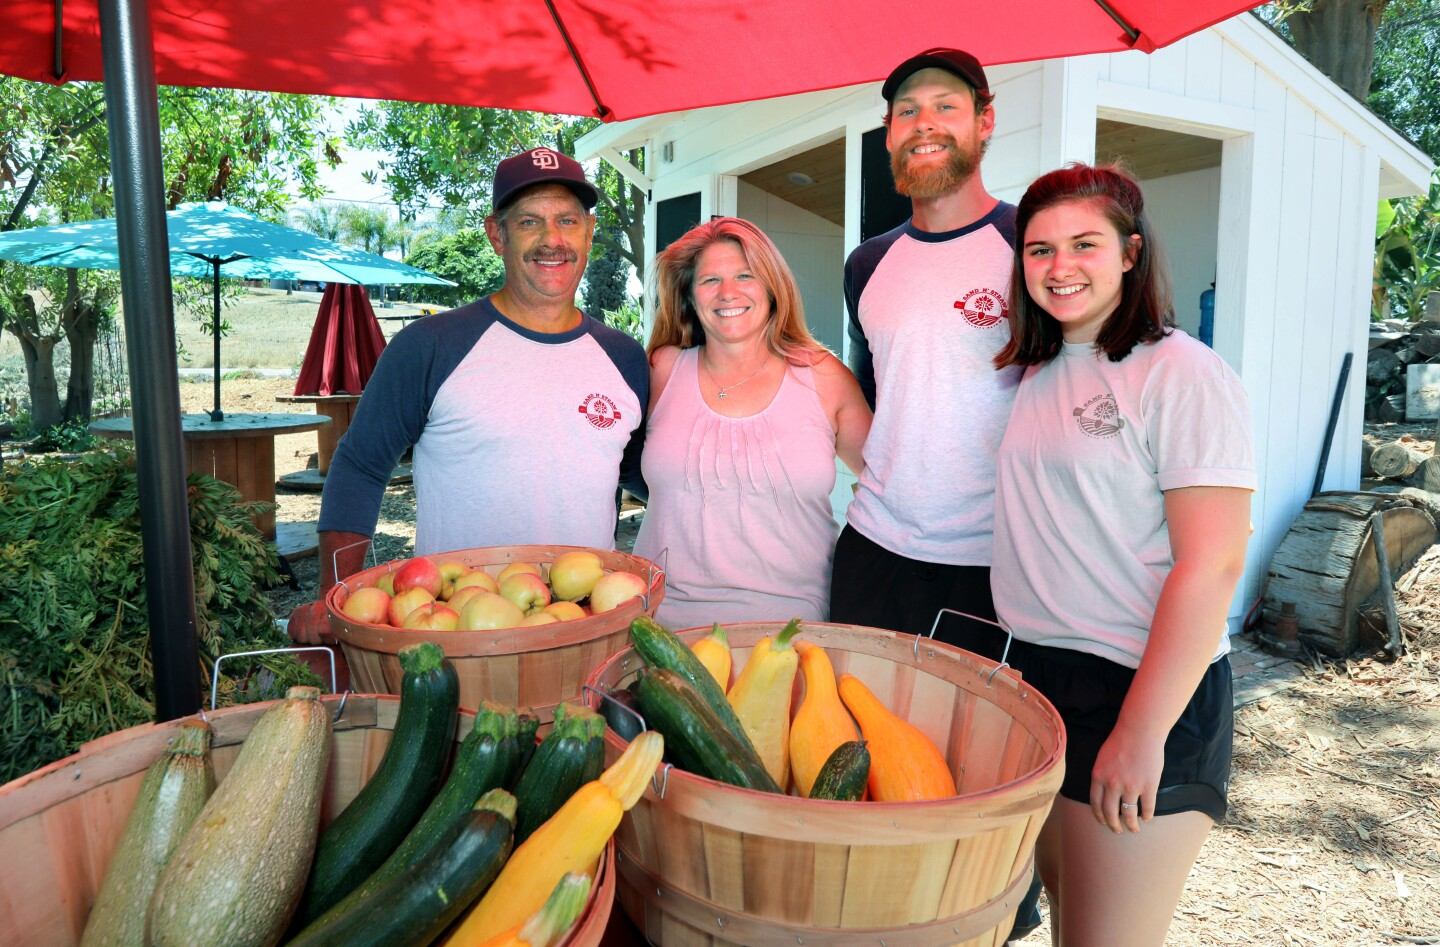 Family farmers Rich and April Viles, left, with their son Jonathan Viles and his wife, Jenna, at Sand n' Straw community Farm in Vista.